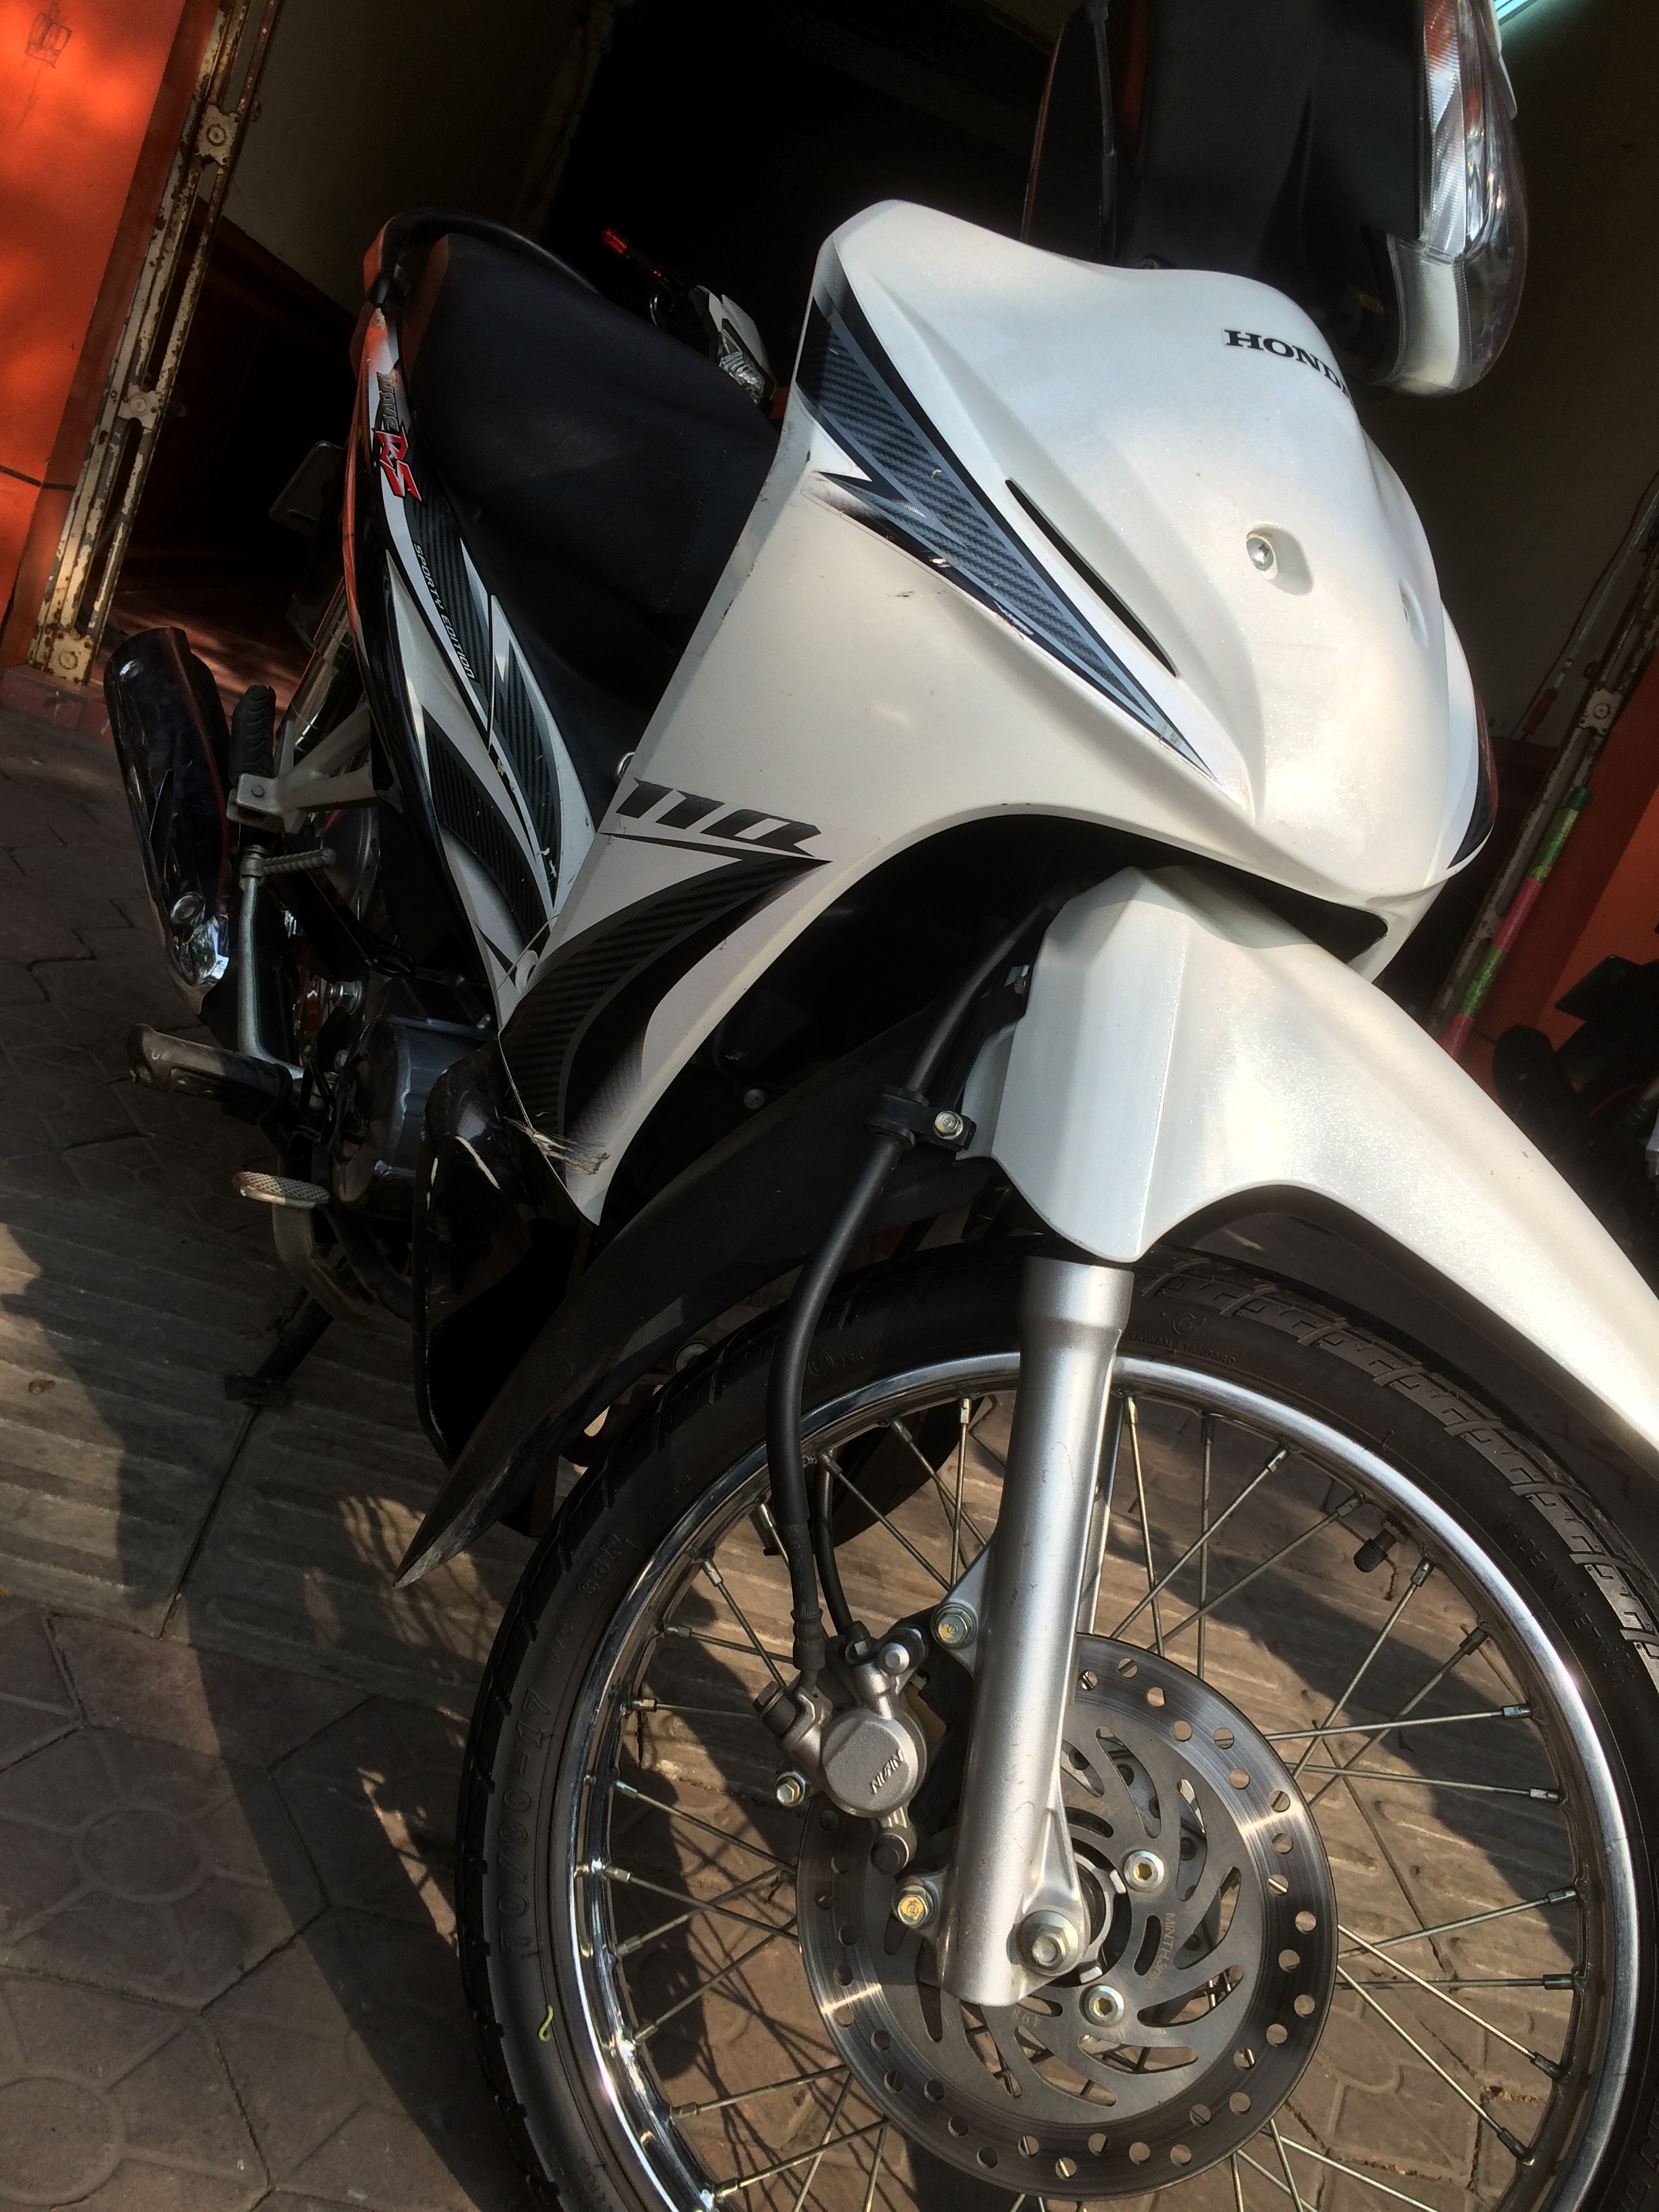 1 Wave rs 110 ,2014